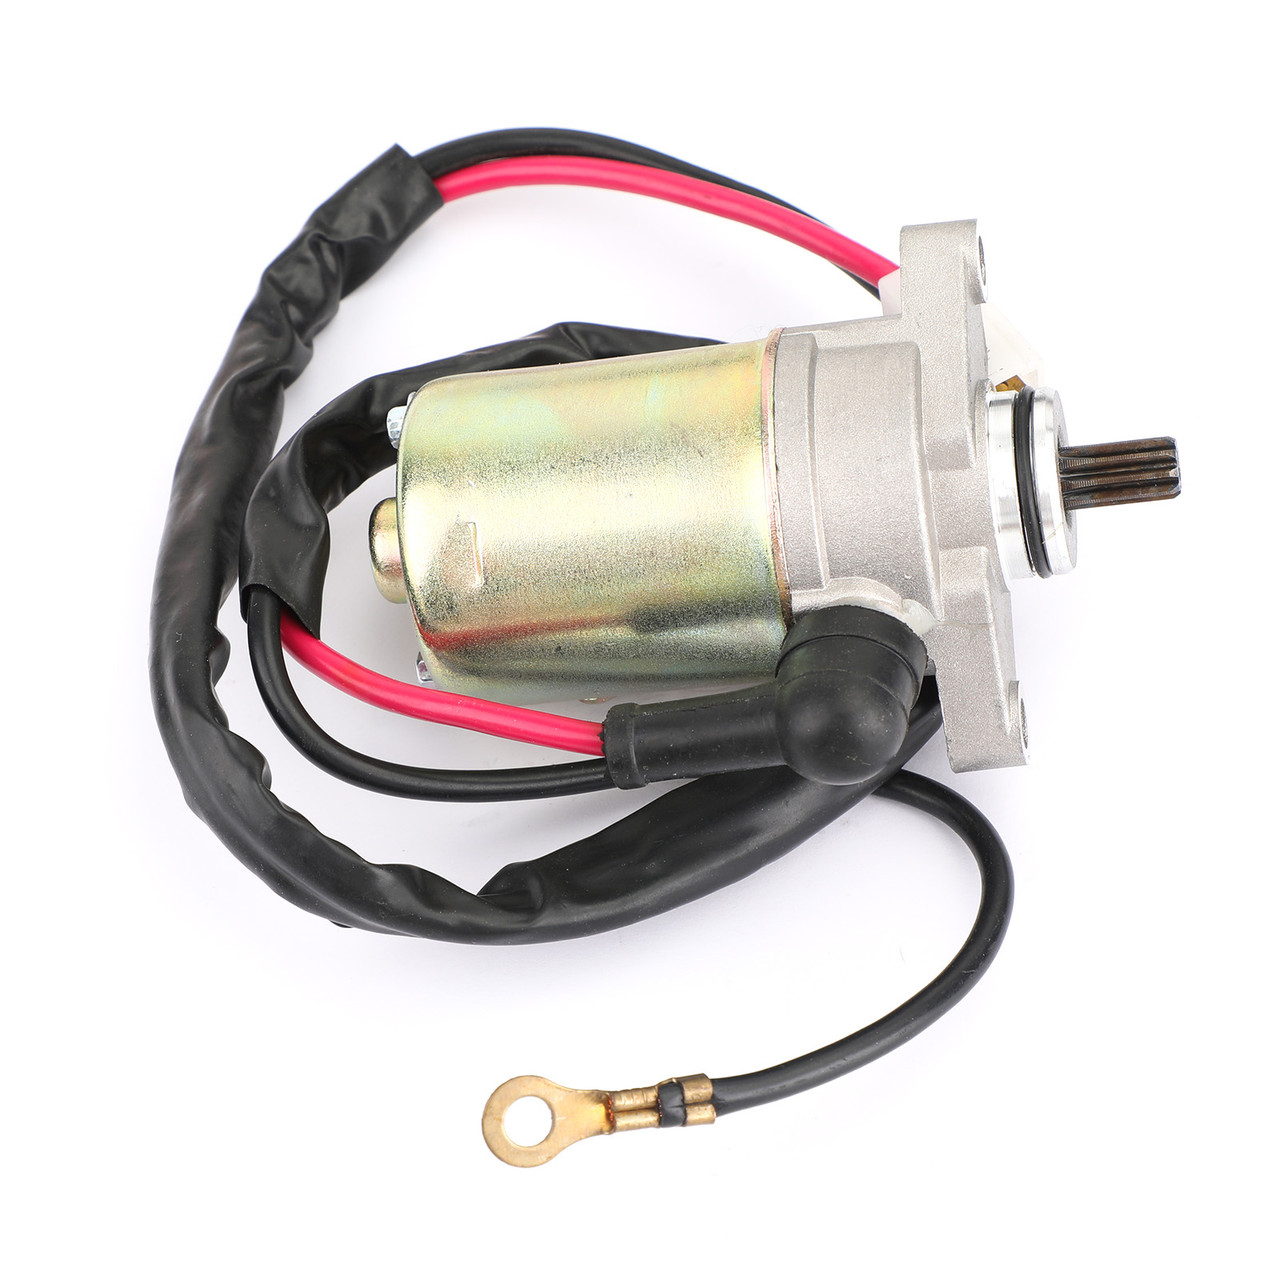 STARTER Motor Engine Starting 9-Spline Fit For Can-Am BOMBARDIER DS50 DS90 02-06 Quest 50 03-04